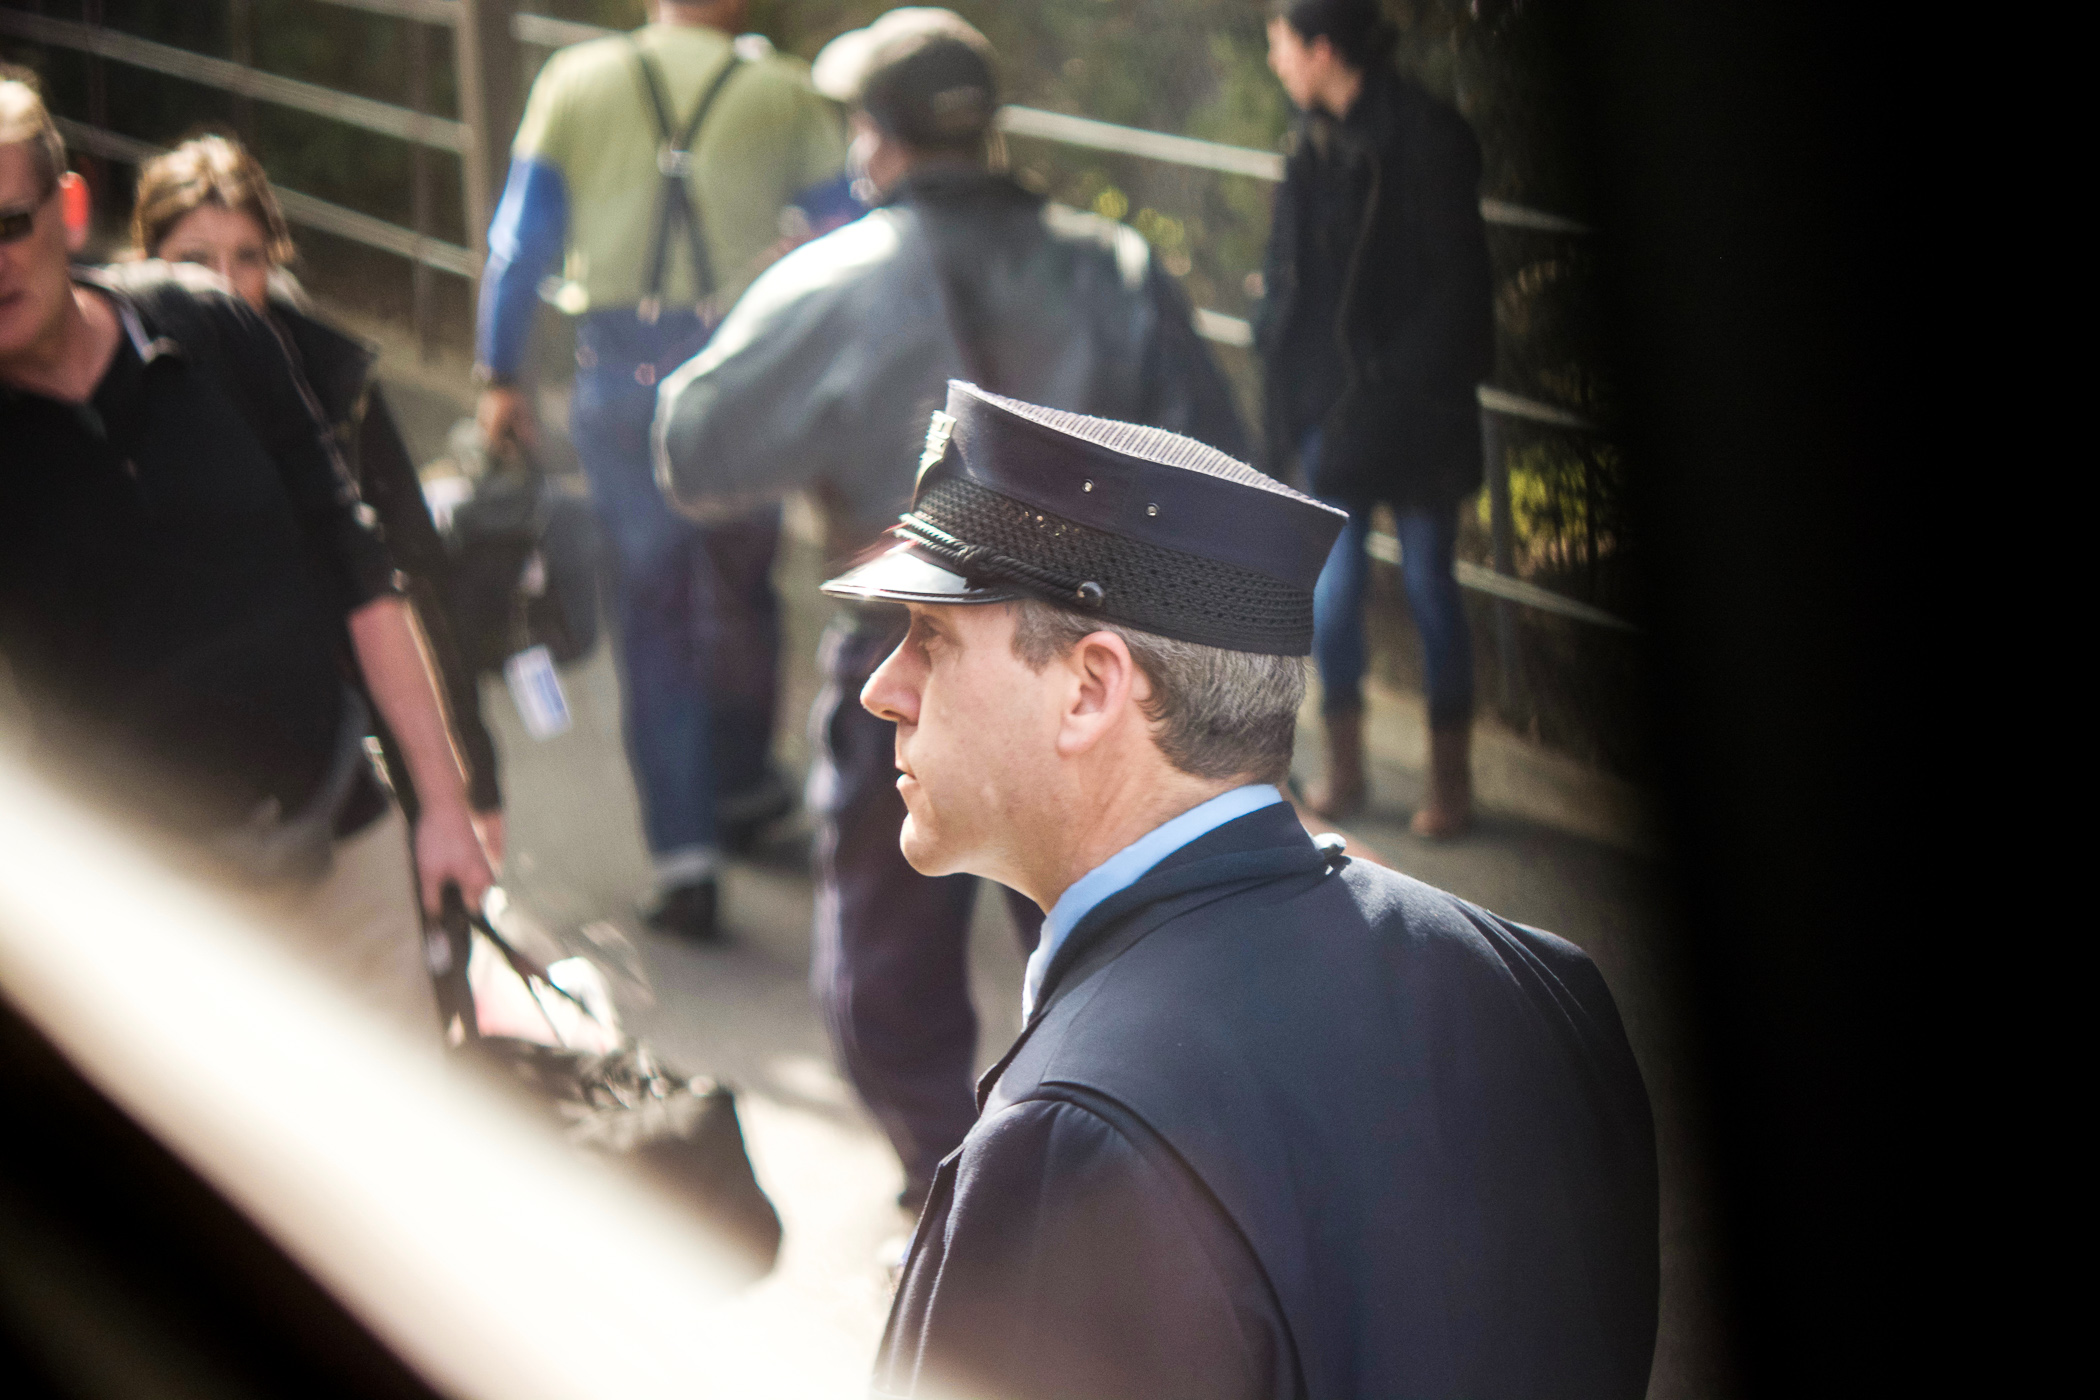 Amtrak conductor assisting passengers boarding train at Durham station.